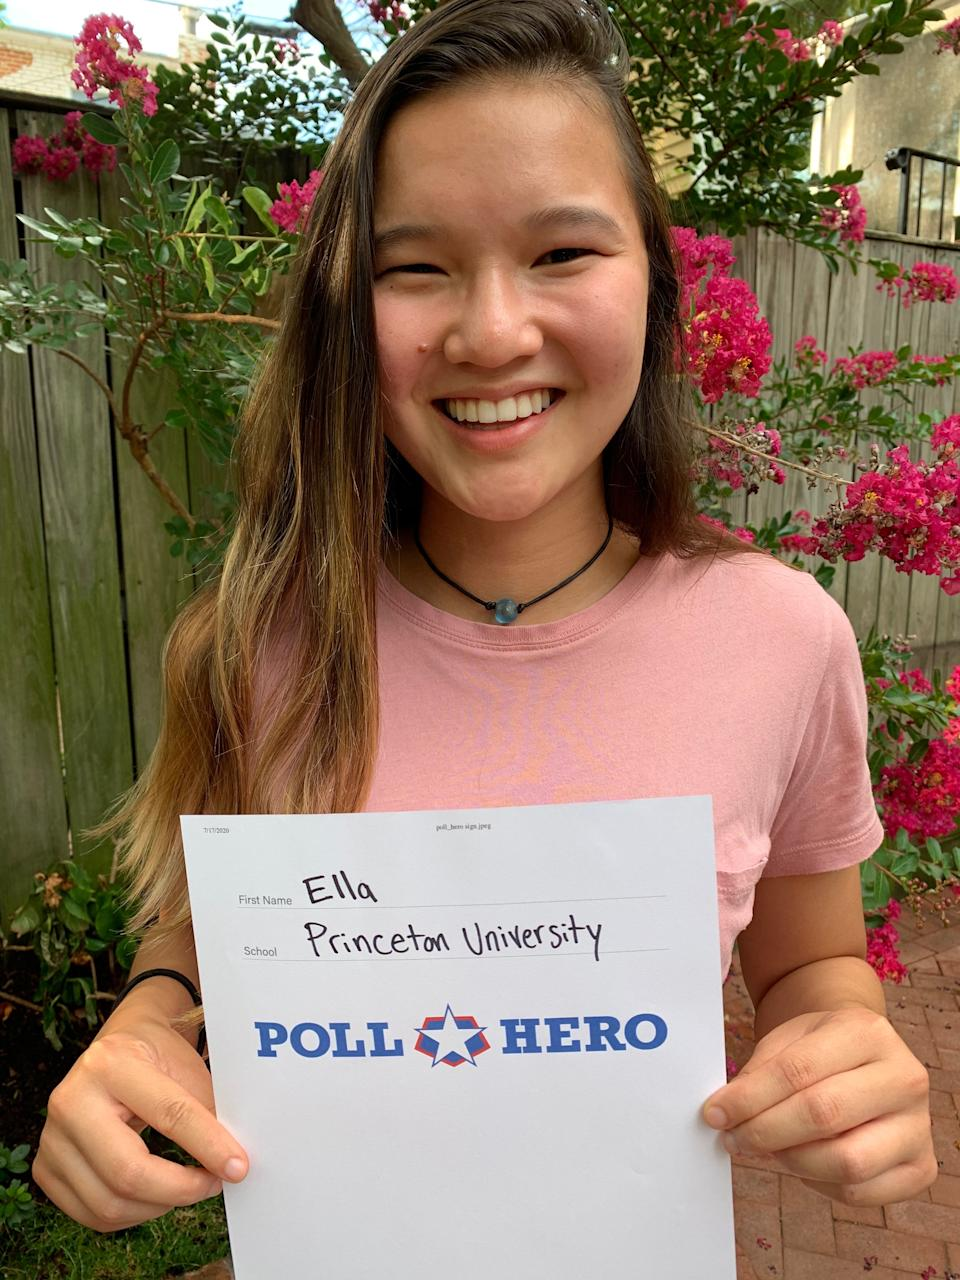 Poll Hero Project co-founded Ella Gantman has helped sign up thousands of young people to work polls during 2020 elections.Ella Gantman/The Poll Hero Project